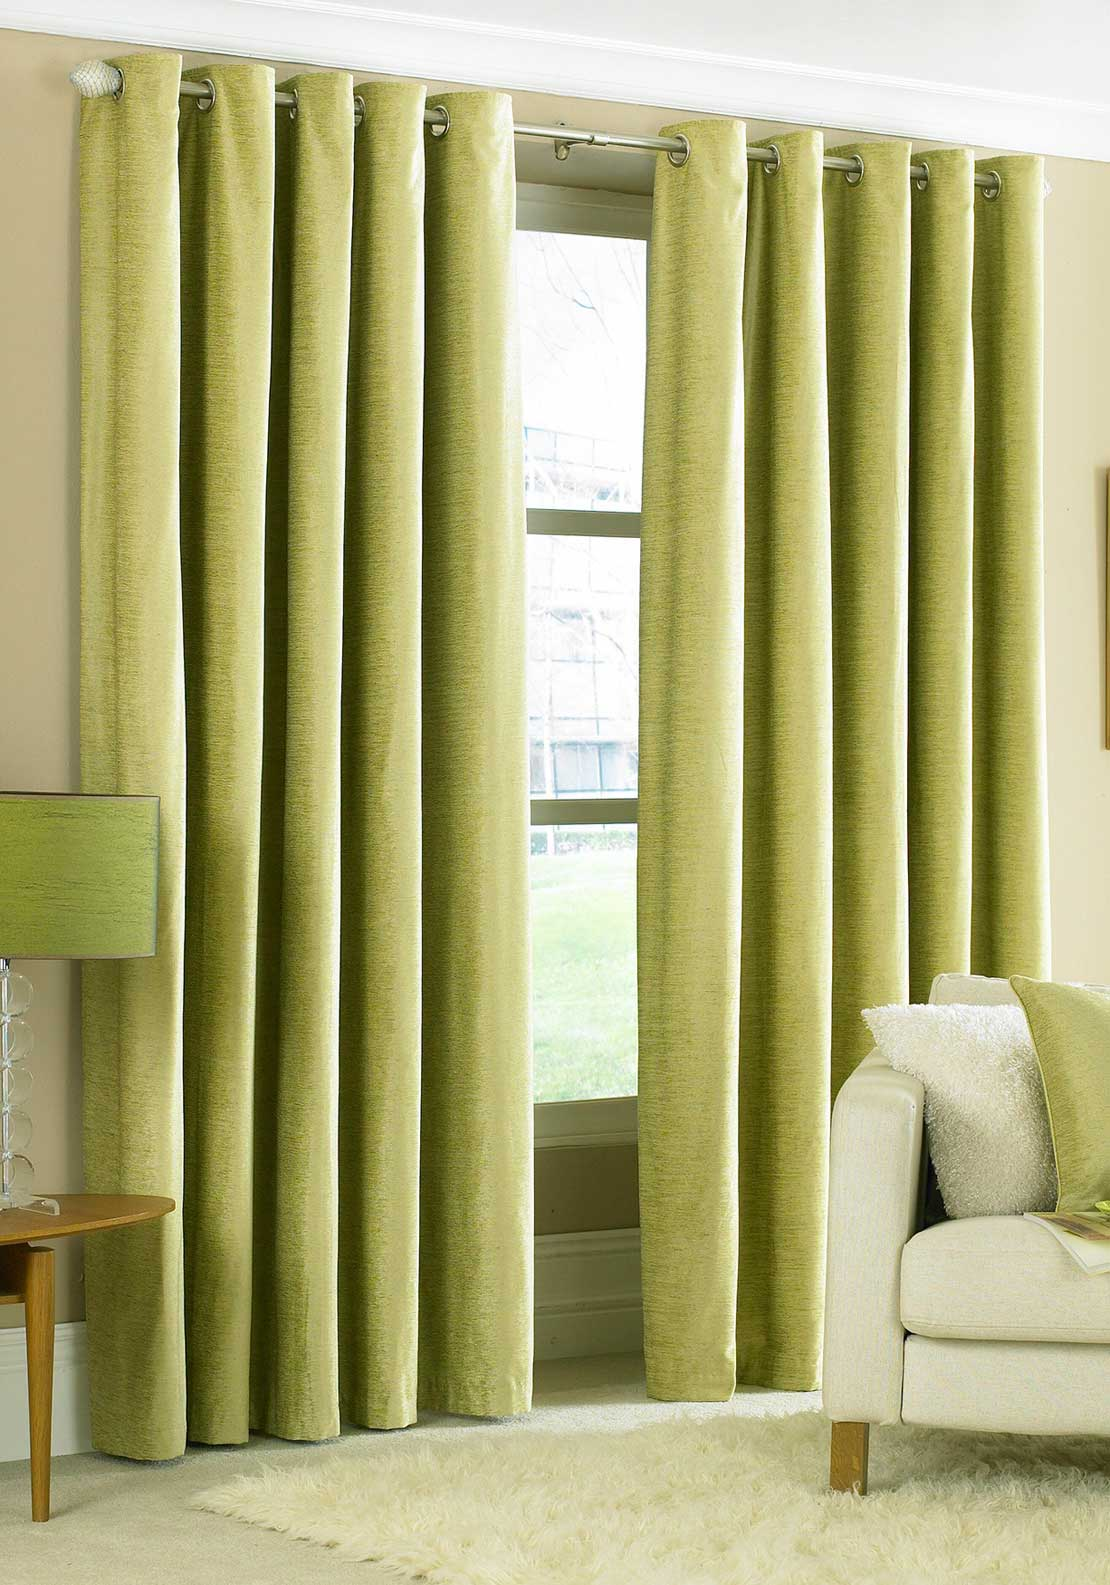 "The Curtain Factory Glenville Fully Lined Eyelet Heading Curtains 90 x 90"", Lime"